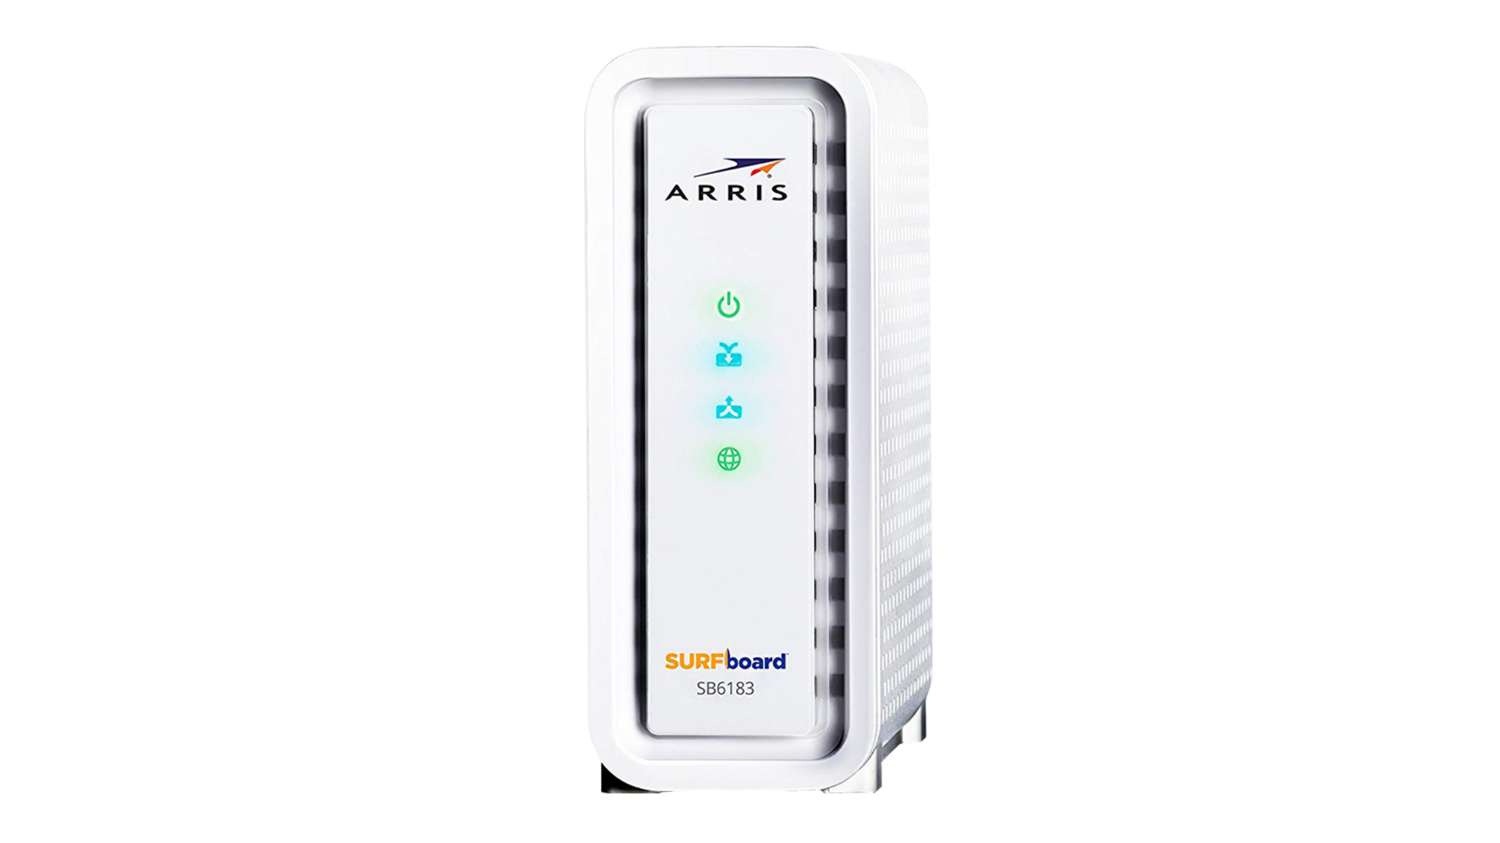 Comcast Compatible Modem Router >> Best Cable Modem 2019 Comcast Spectrum Cox Modem Reviews